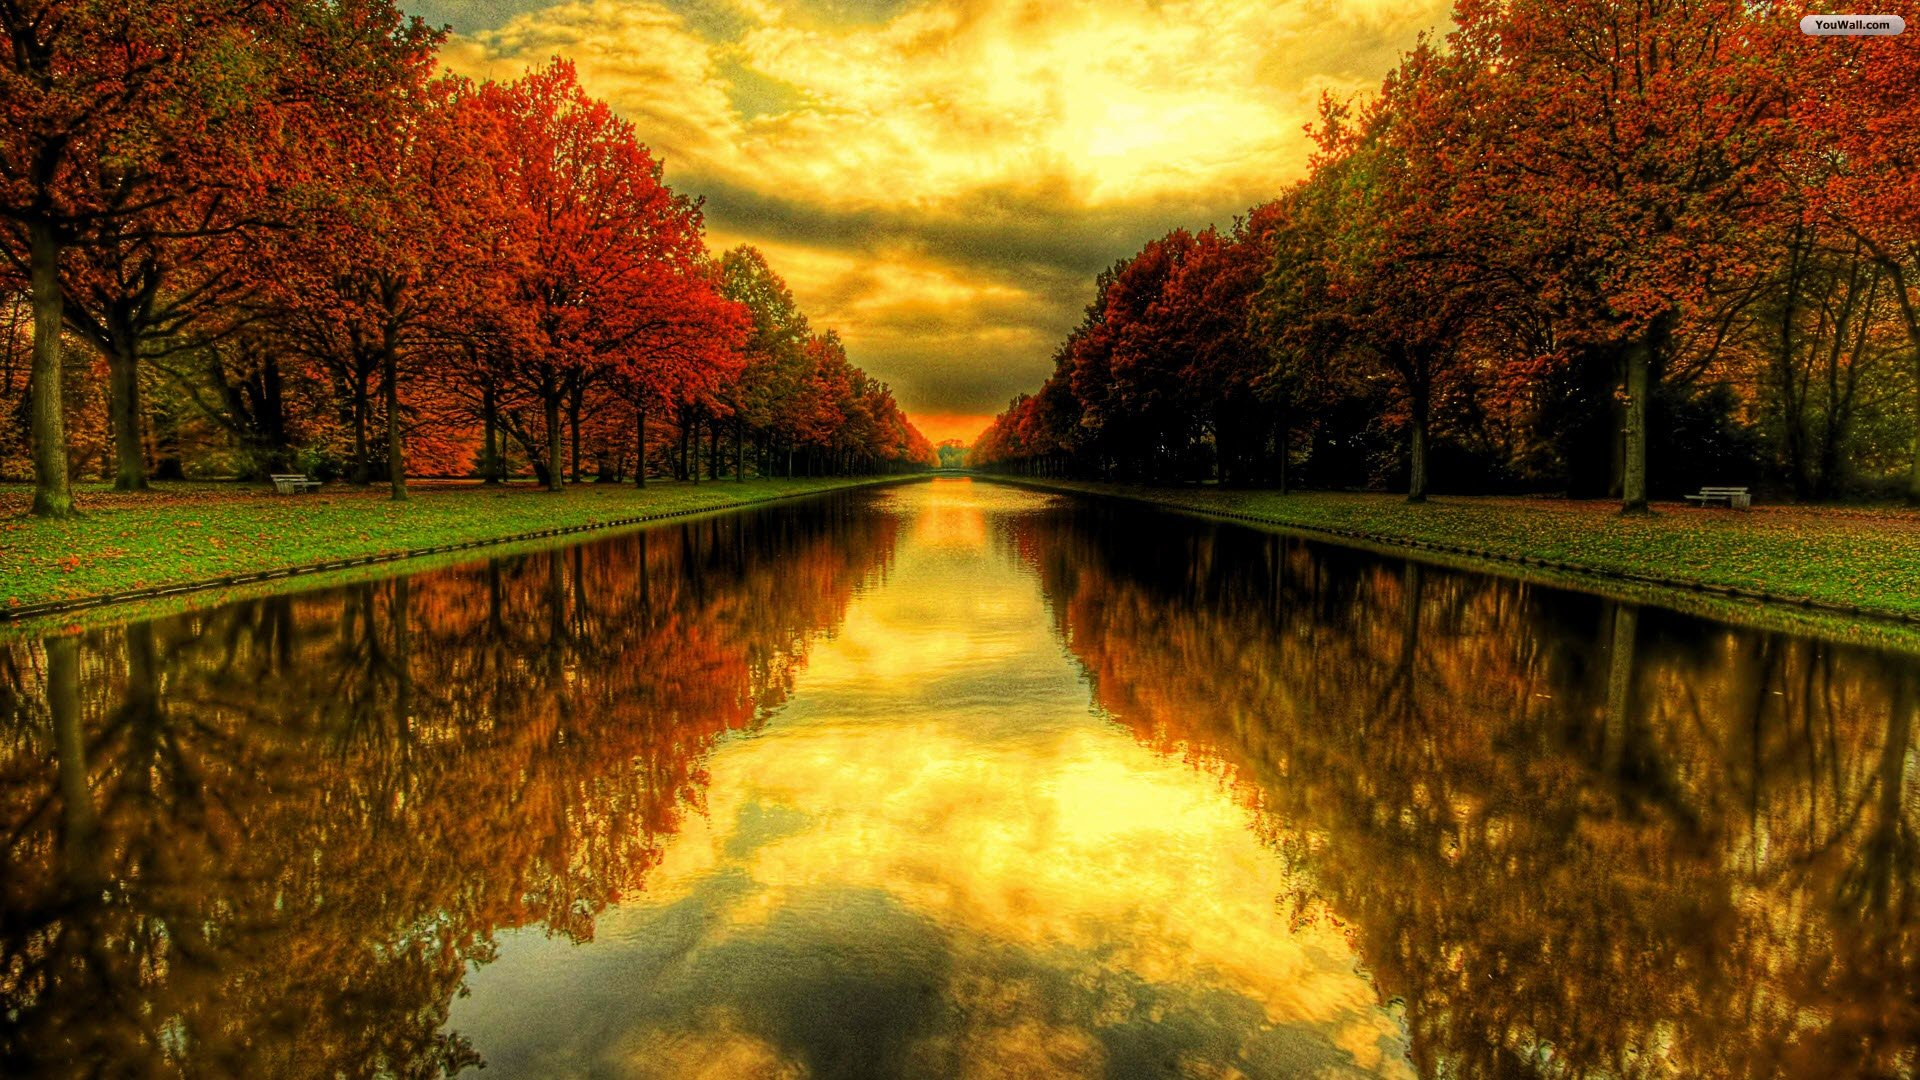 Autumn Backgrounds Wallpaper Widescreen 6977051 1920x1080